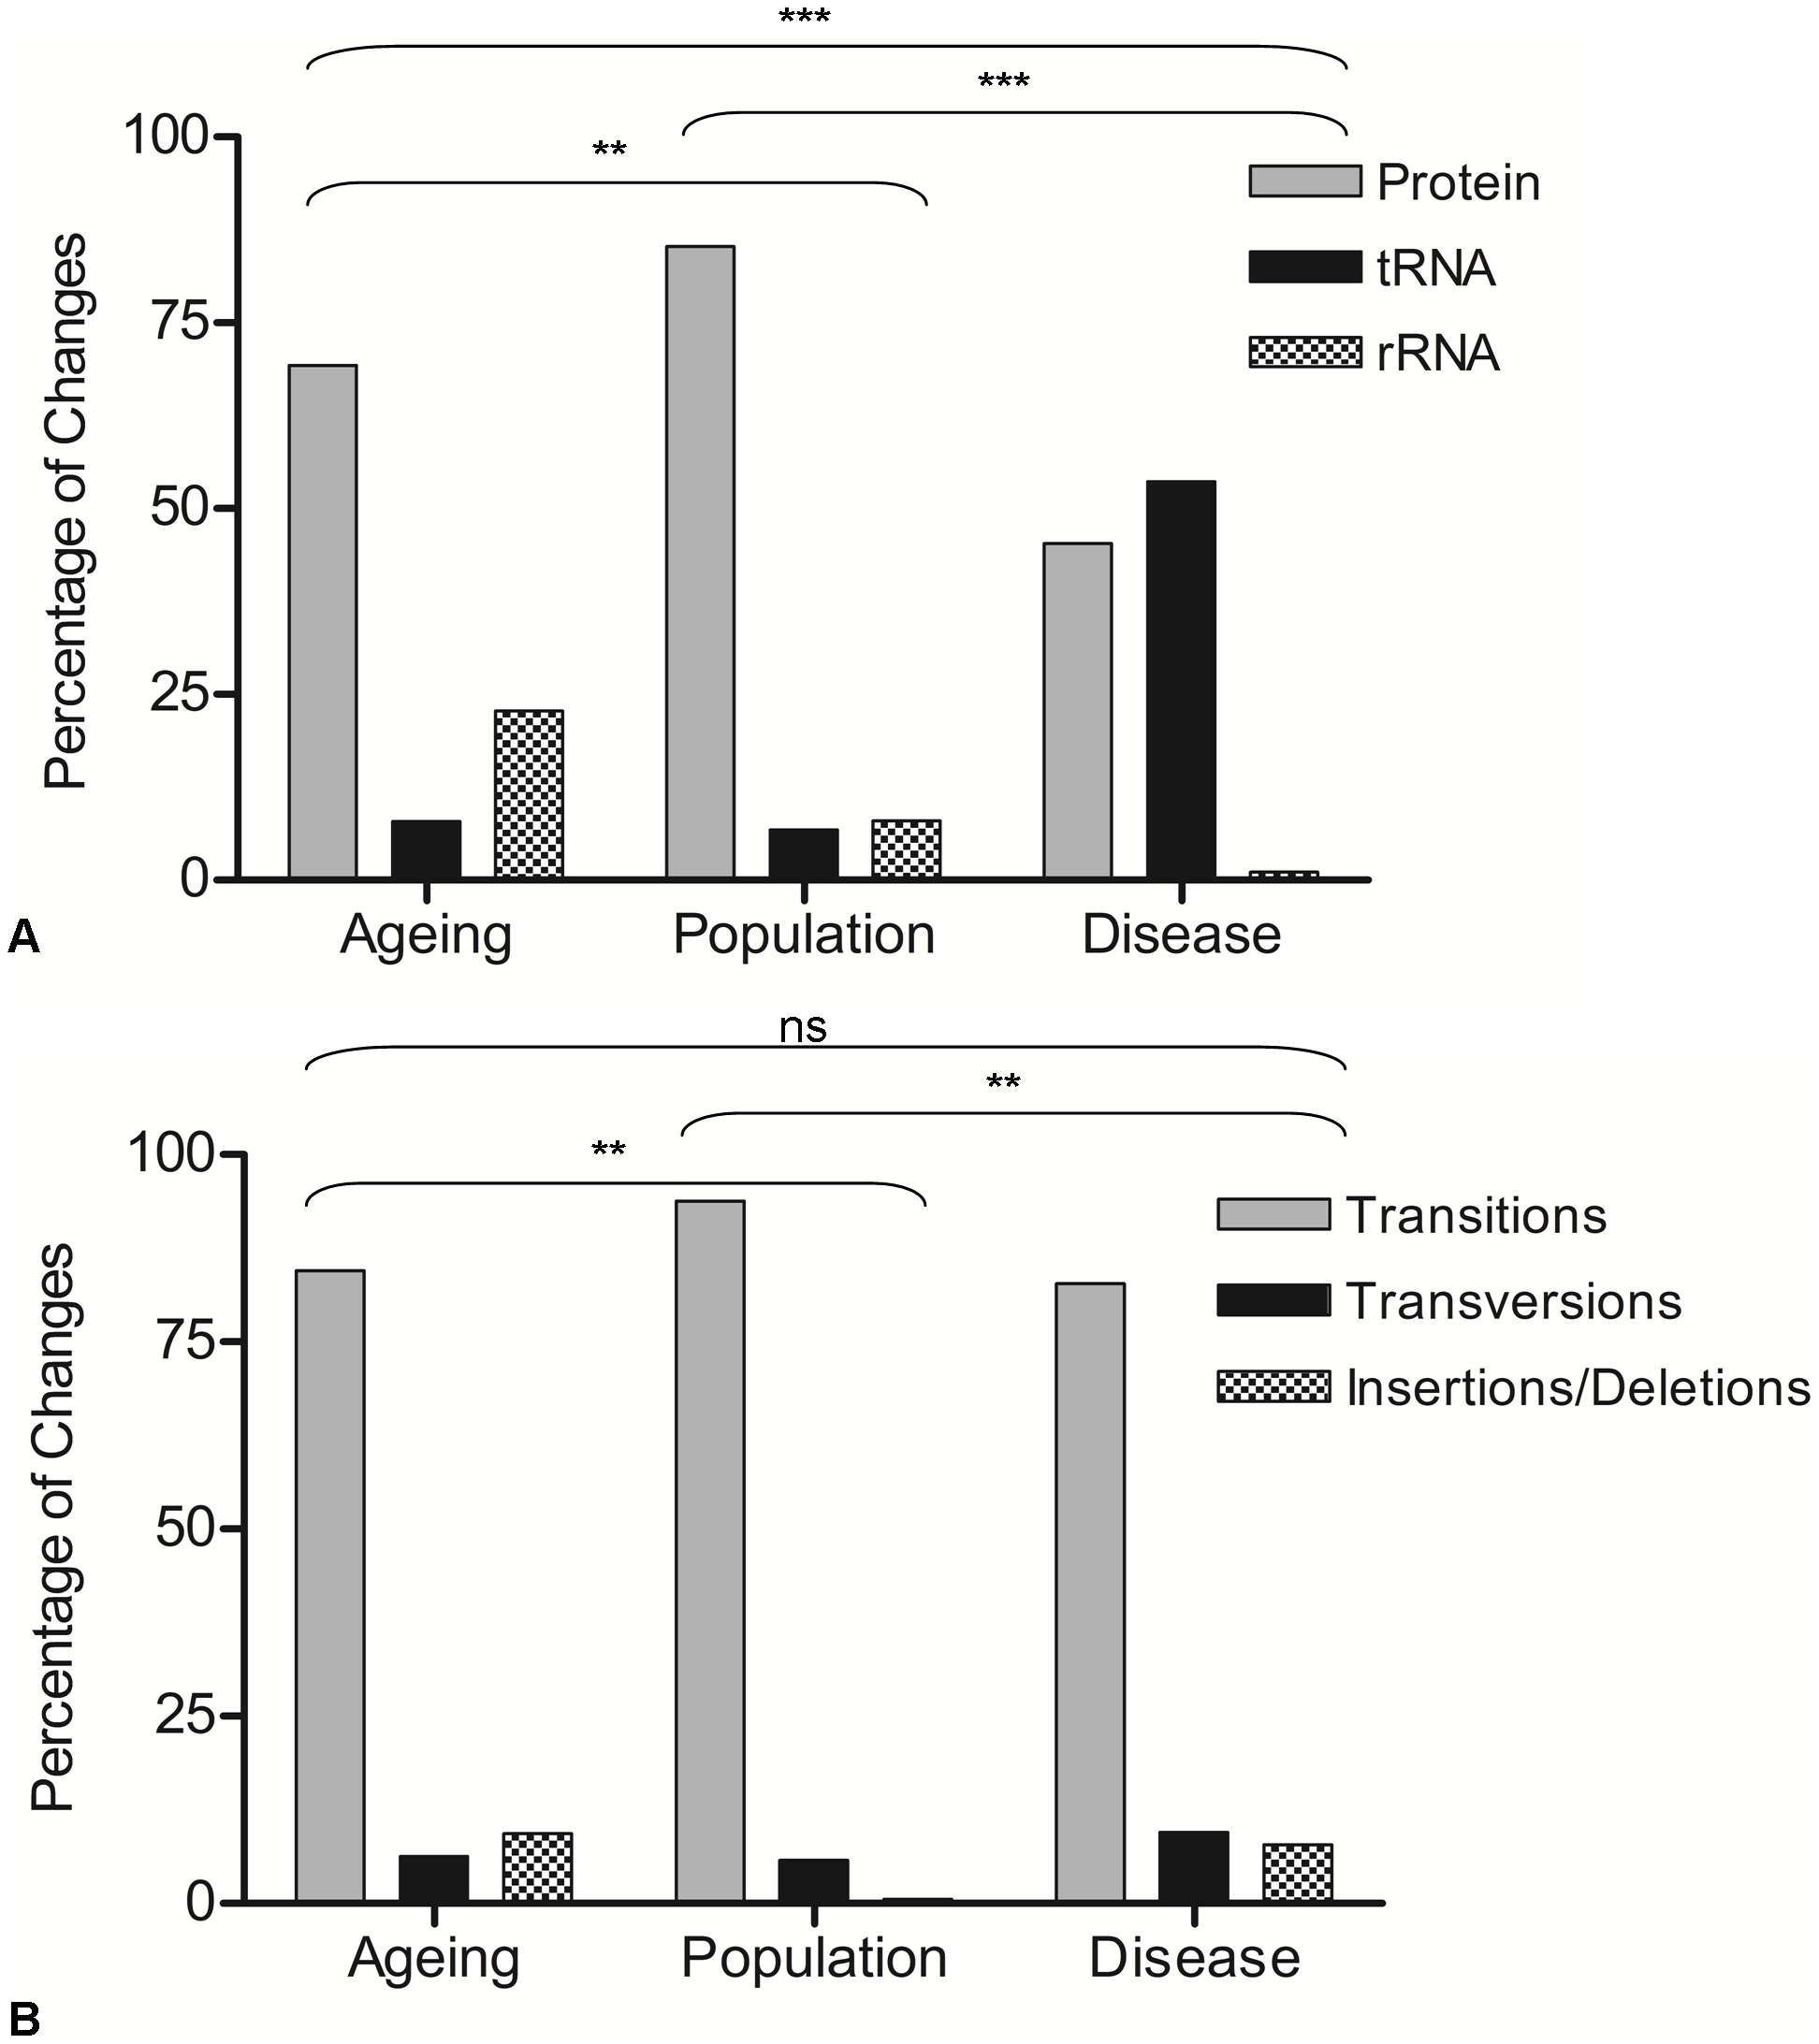 Gene location and types of mutations observed in ageing, population, and disease.